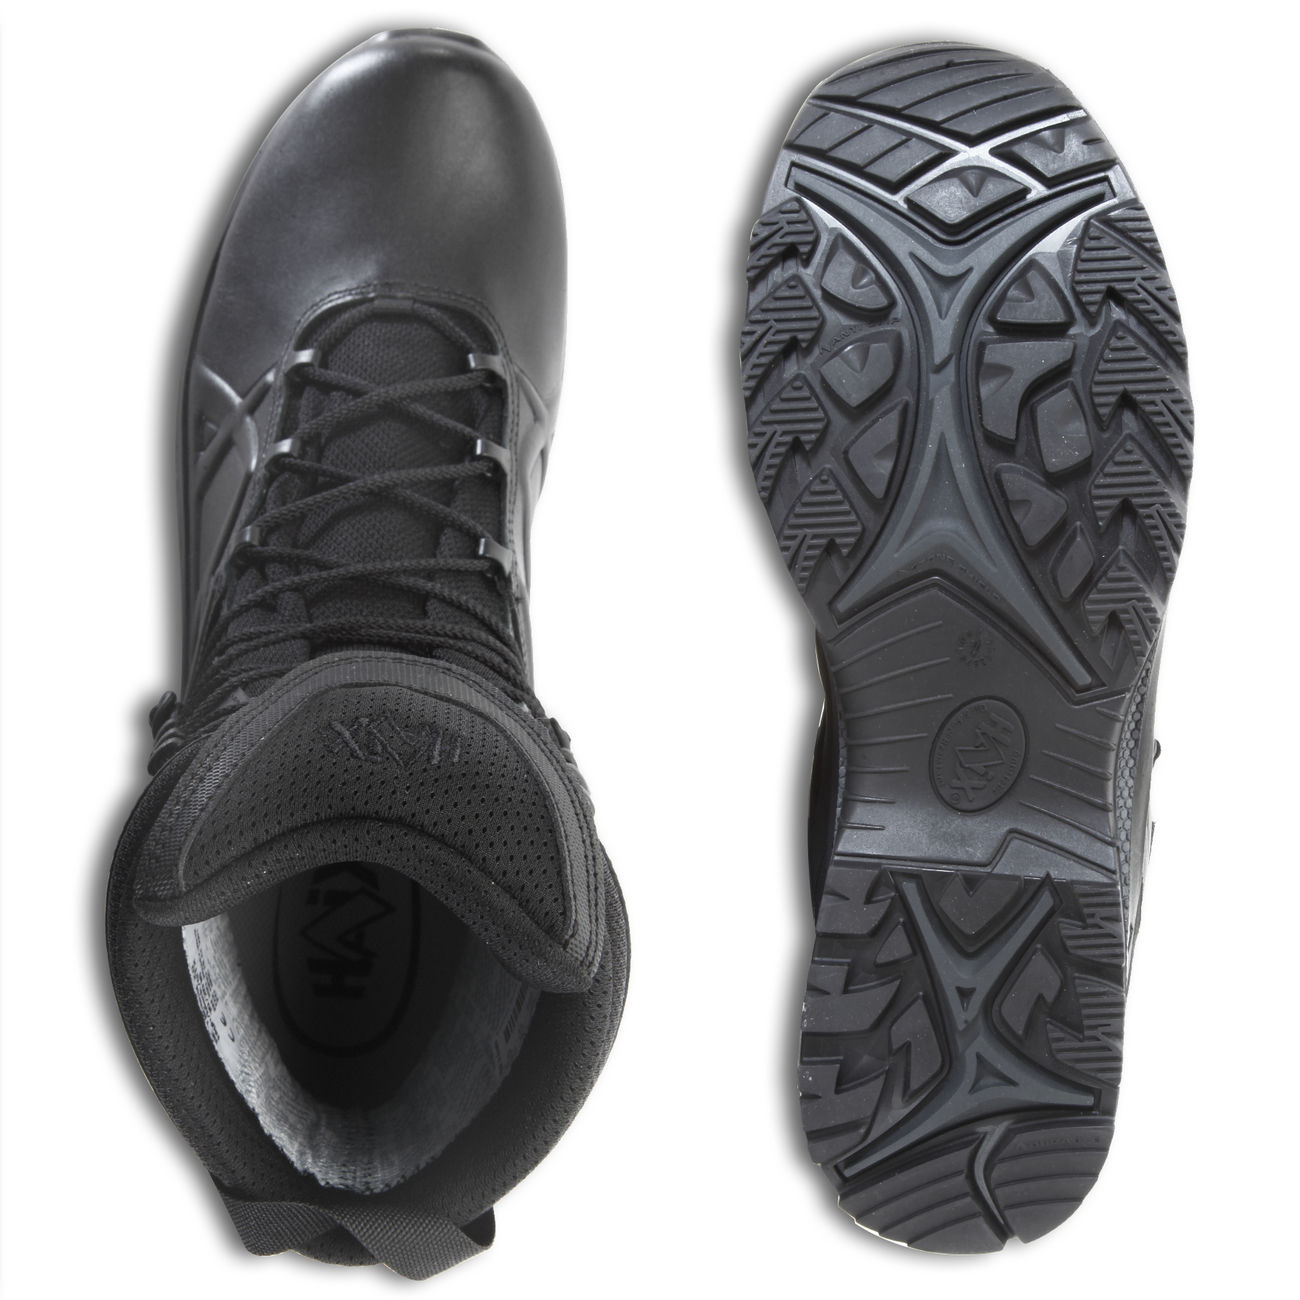 Haix Stiefel Black Eagle Tactical 2.0 High schwarz 3